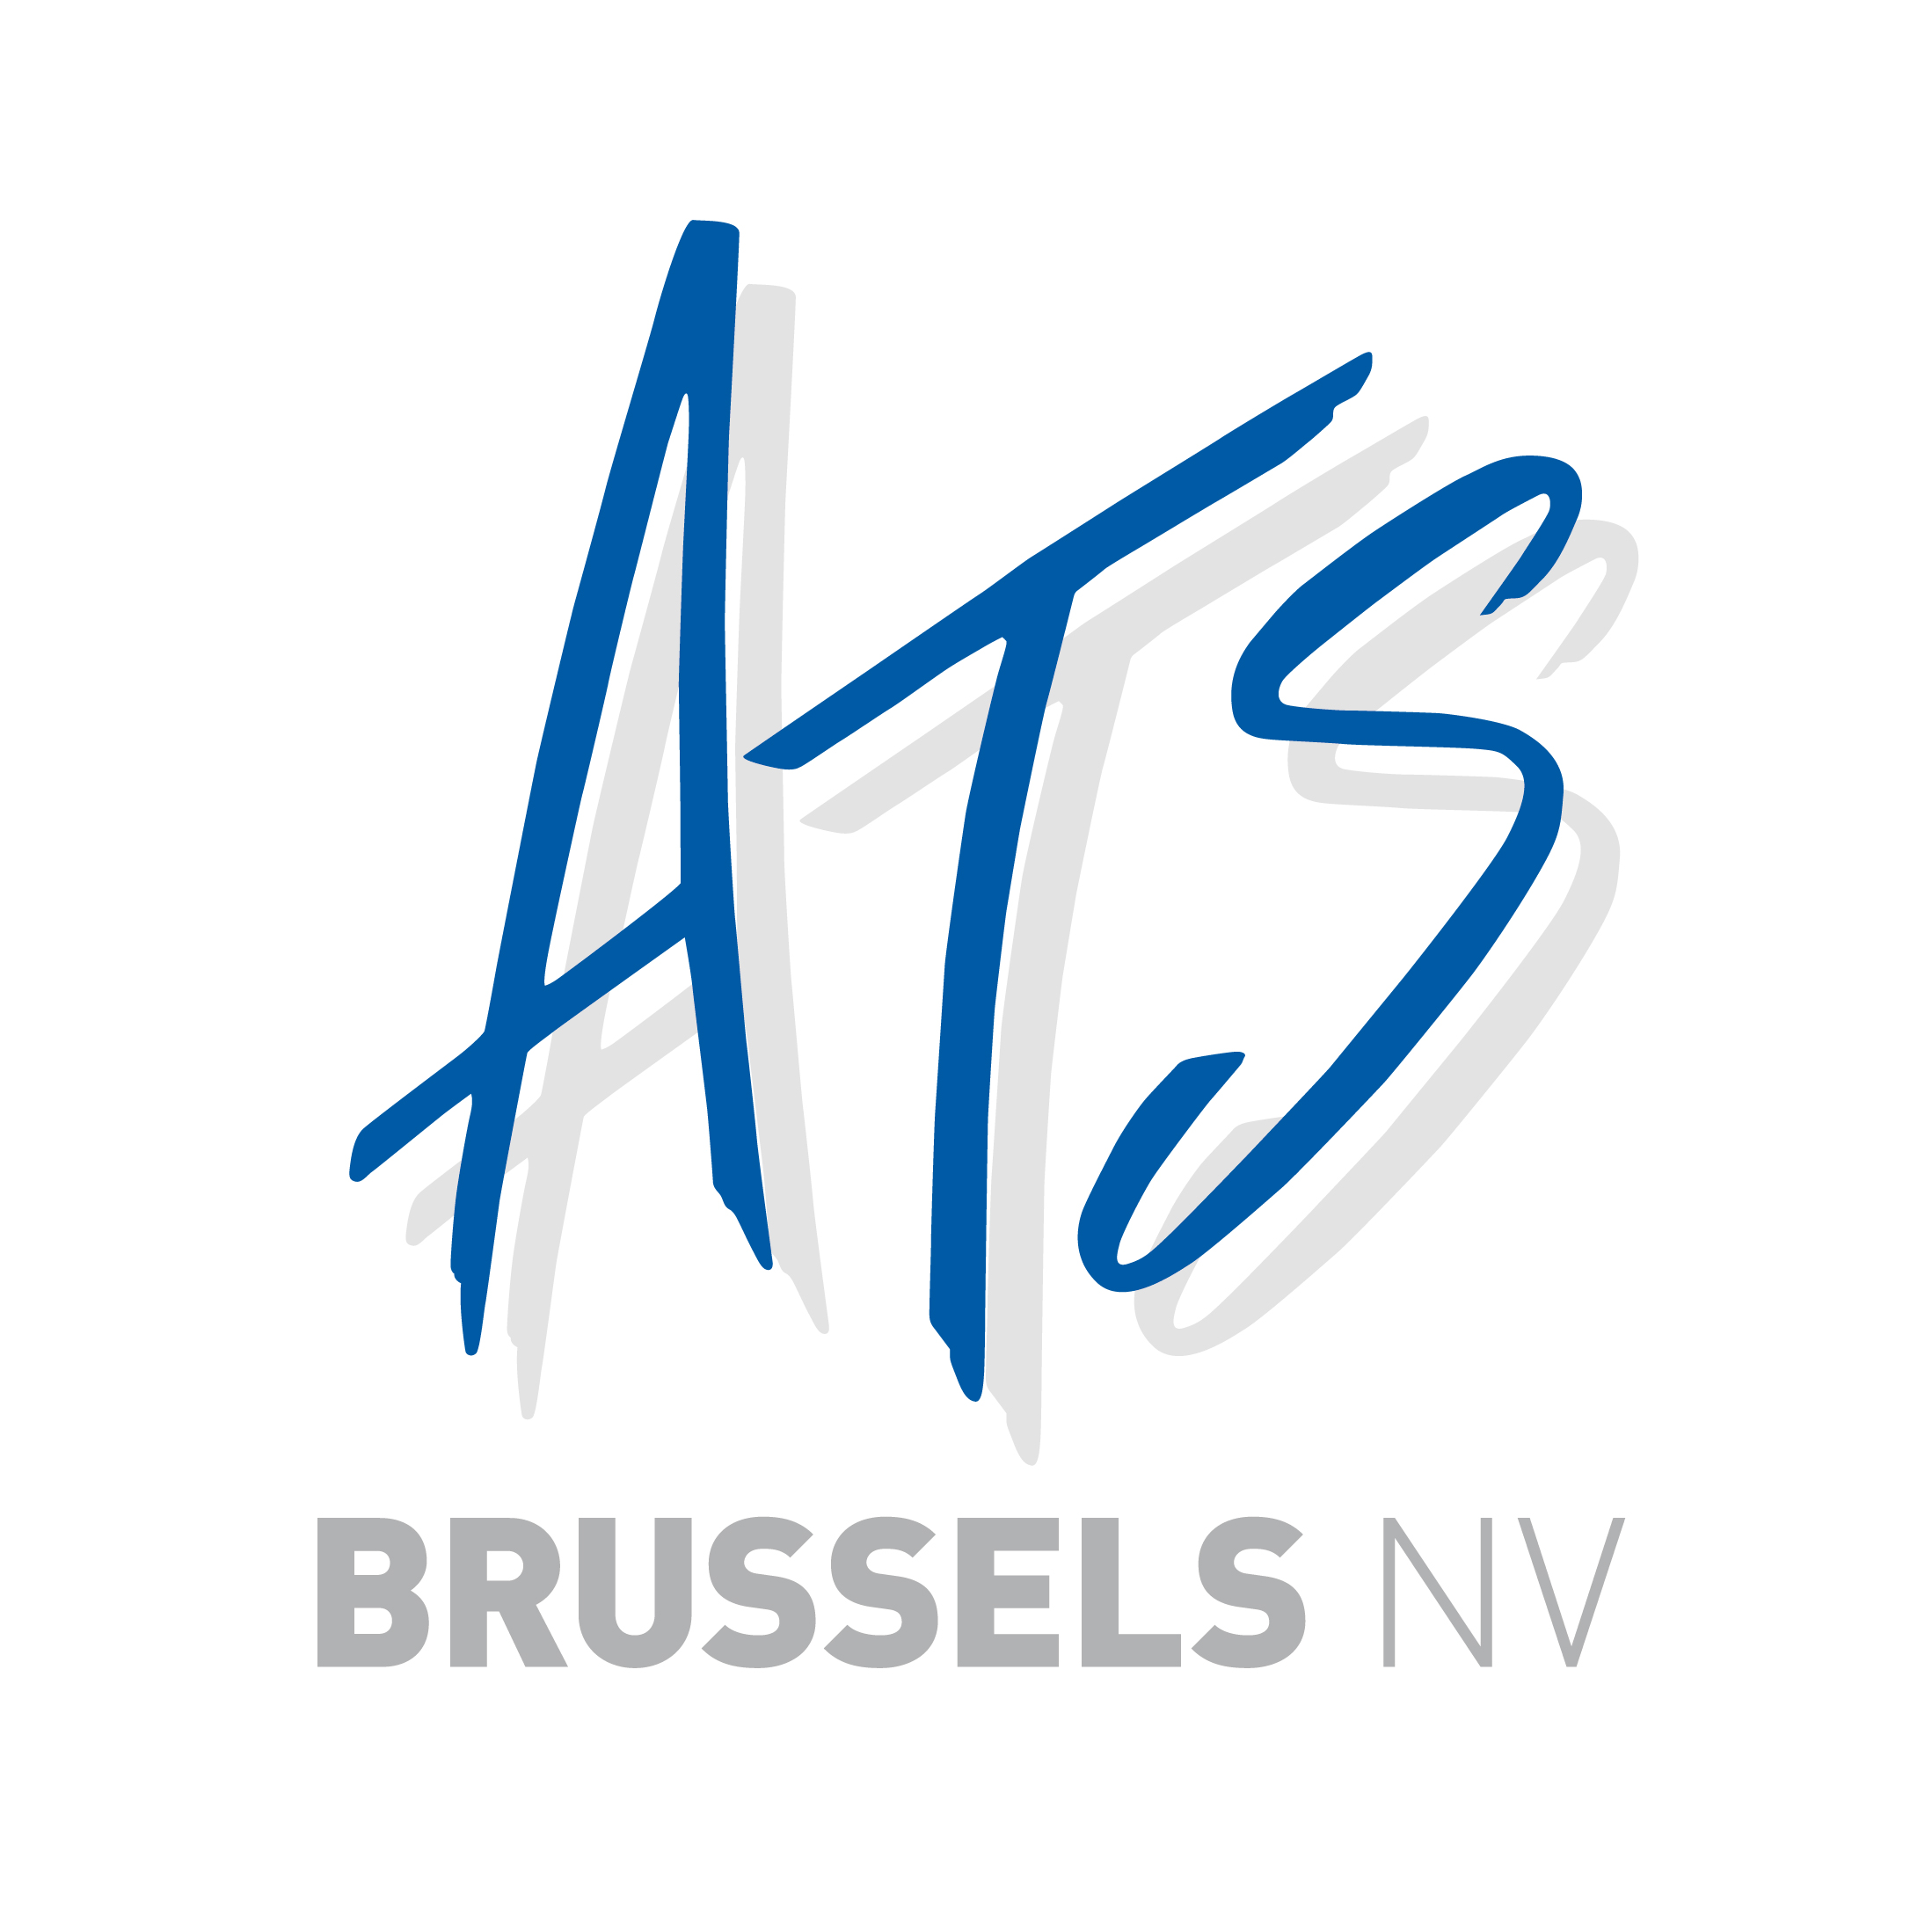 ATS Brussels nv